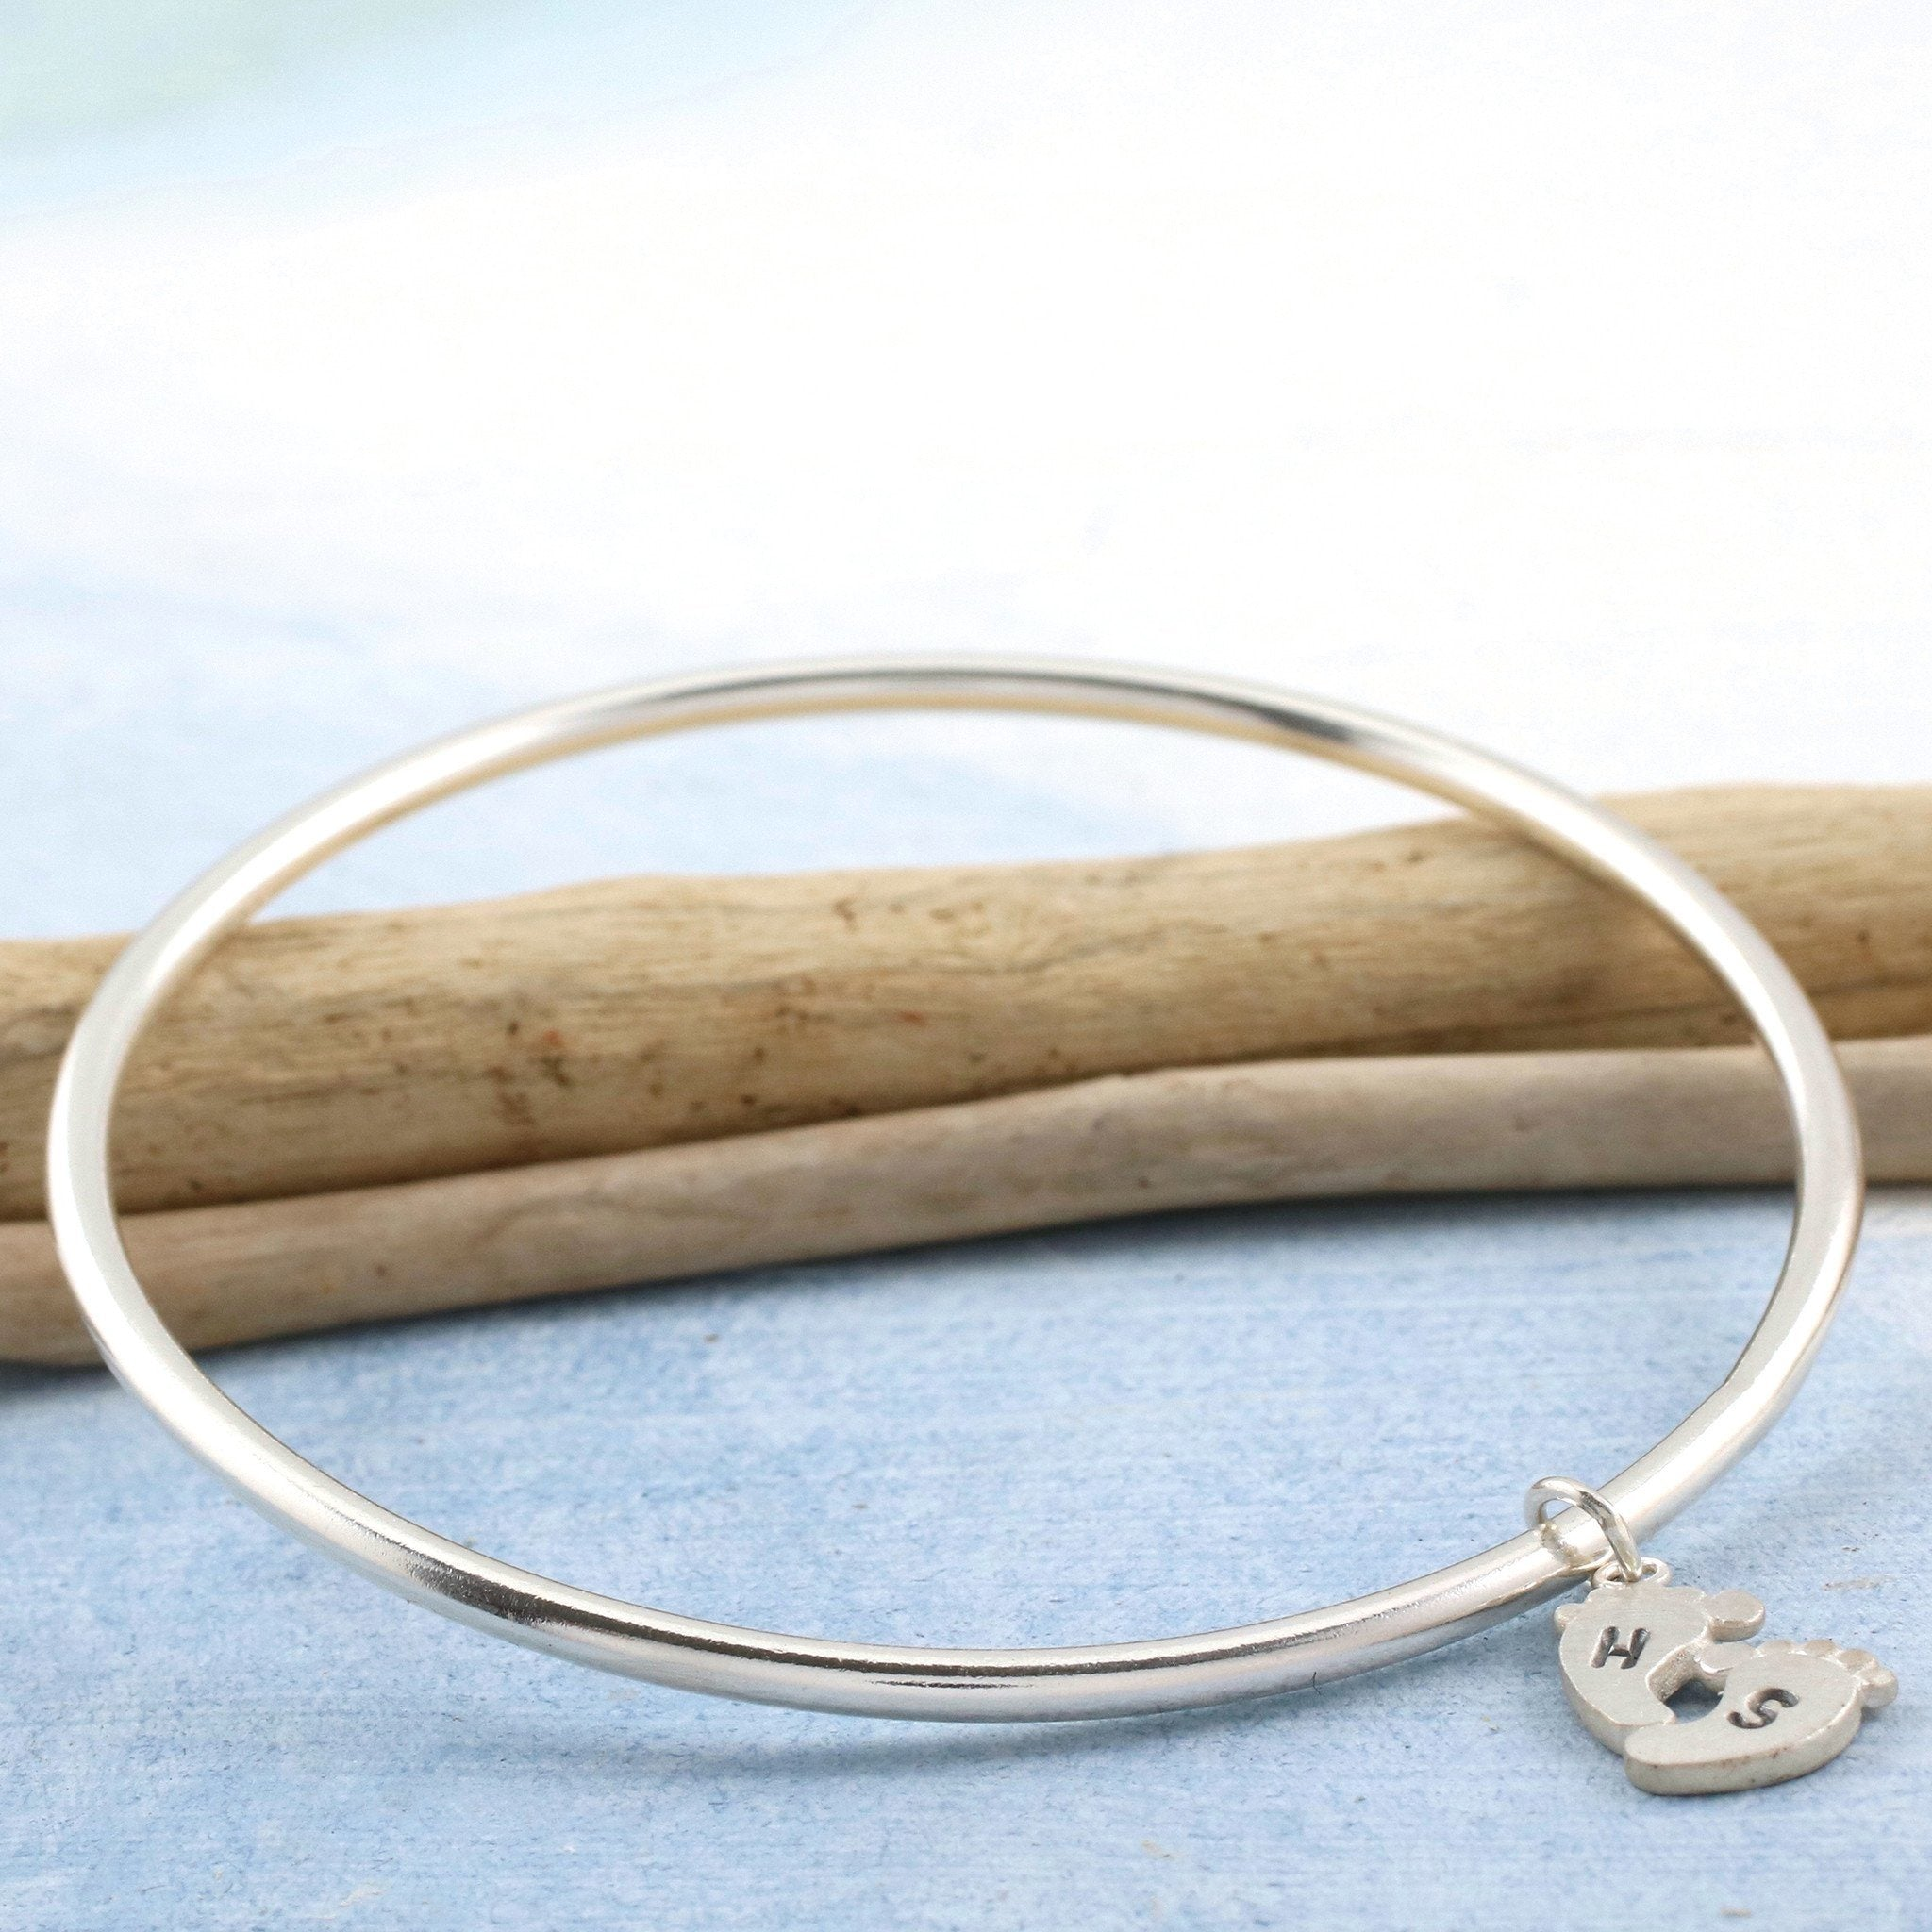 silver bracelets inch asp single chunky sterling cm uk with bar fastening p school heart bangles link bangle charm